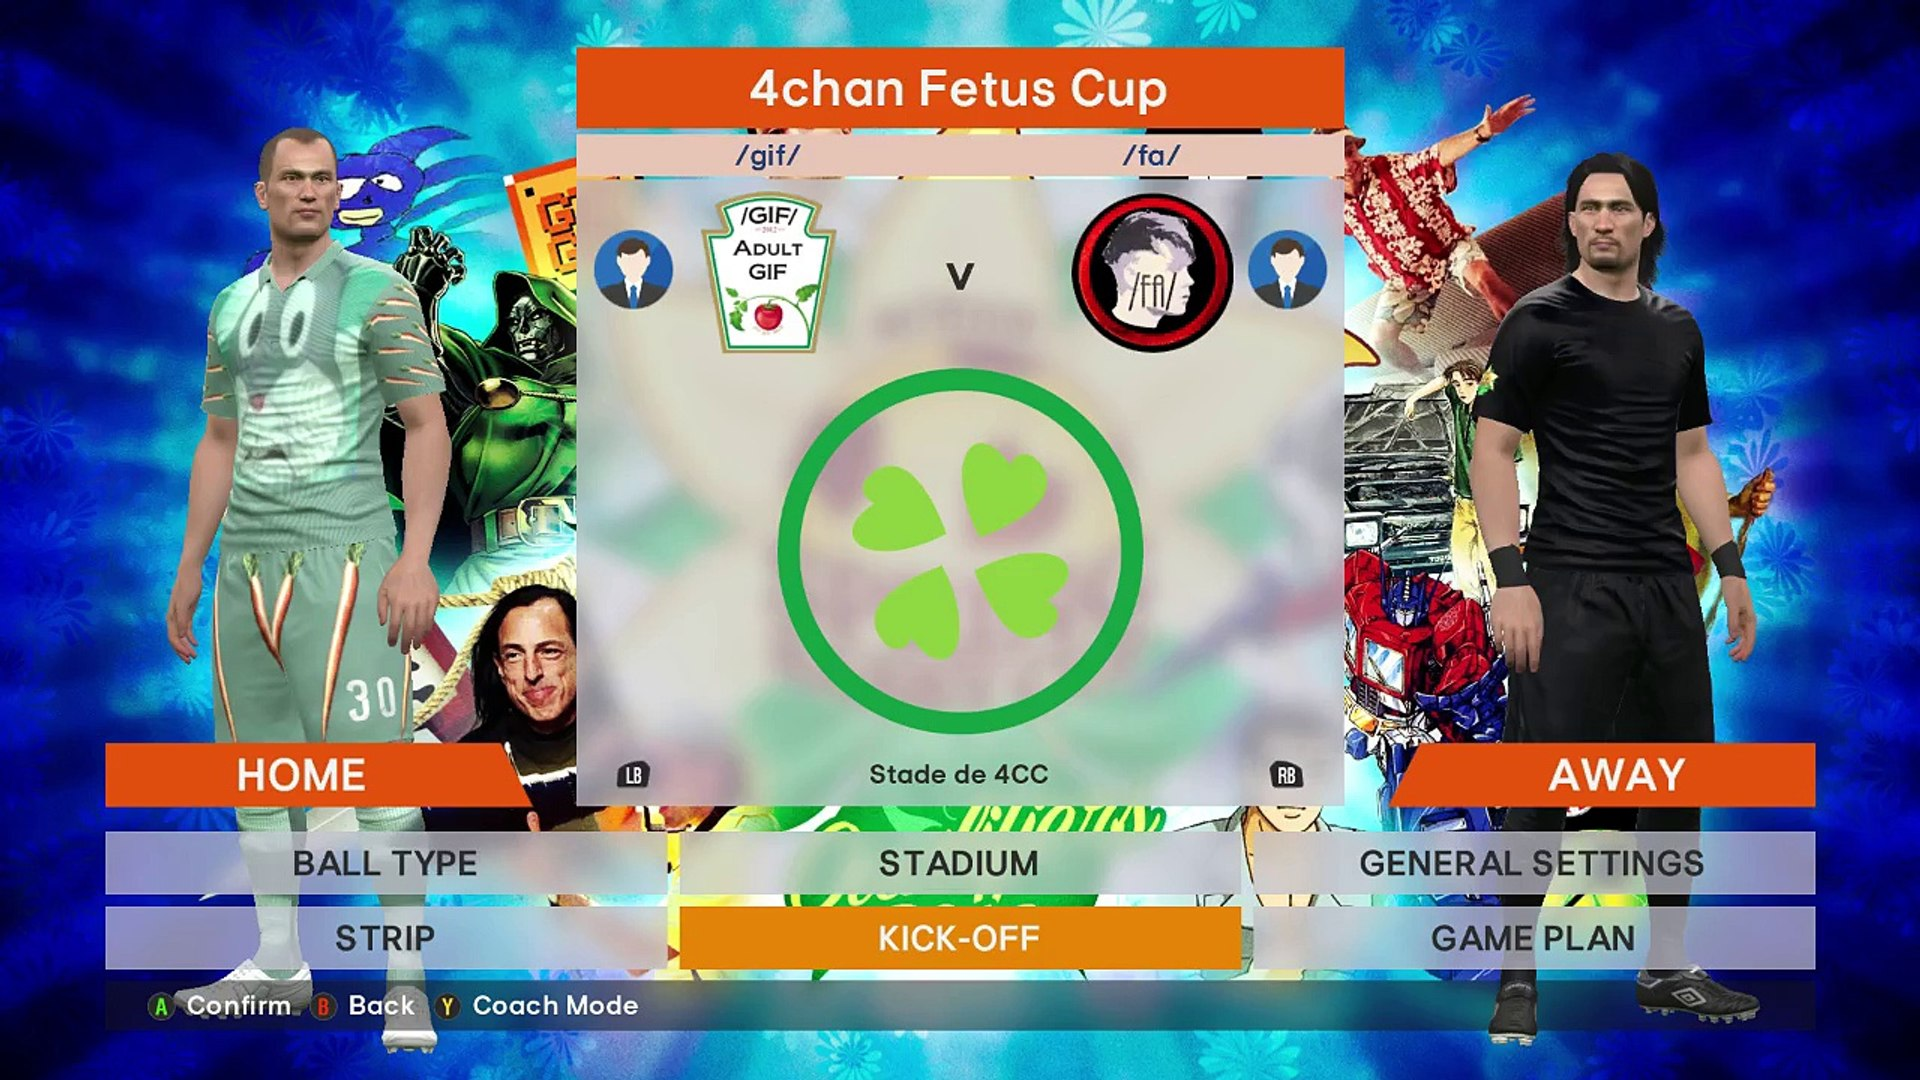 4Chan Gif 2016 4chan spring babby cup qualifiers group a - /gif/ vs /fa/